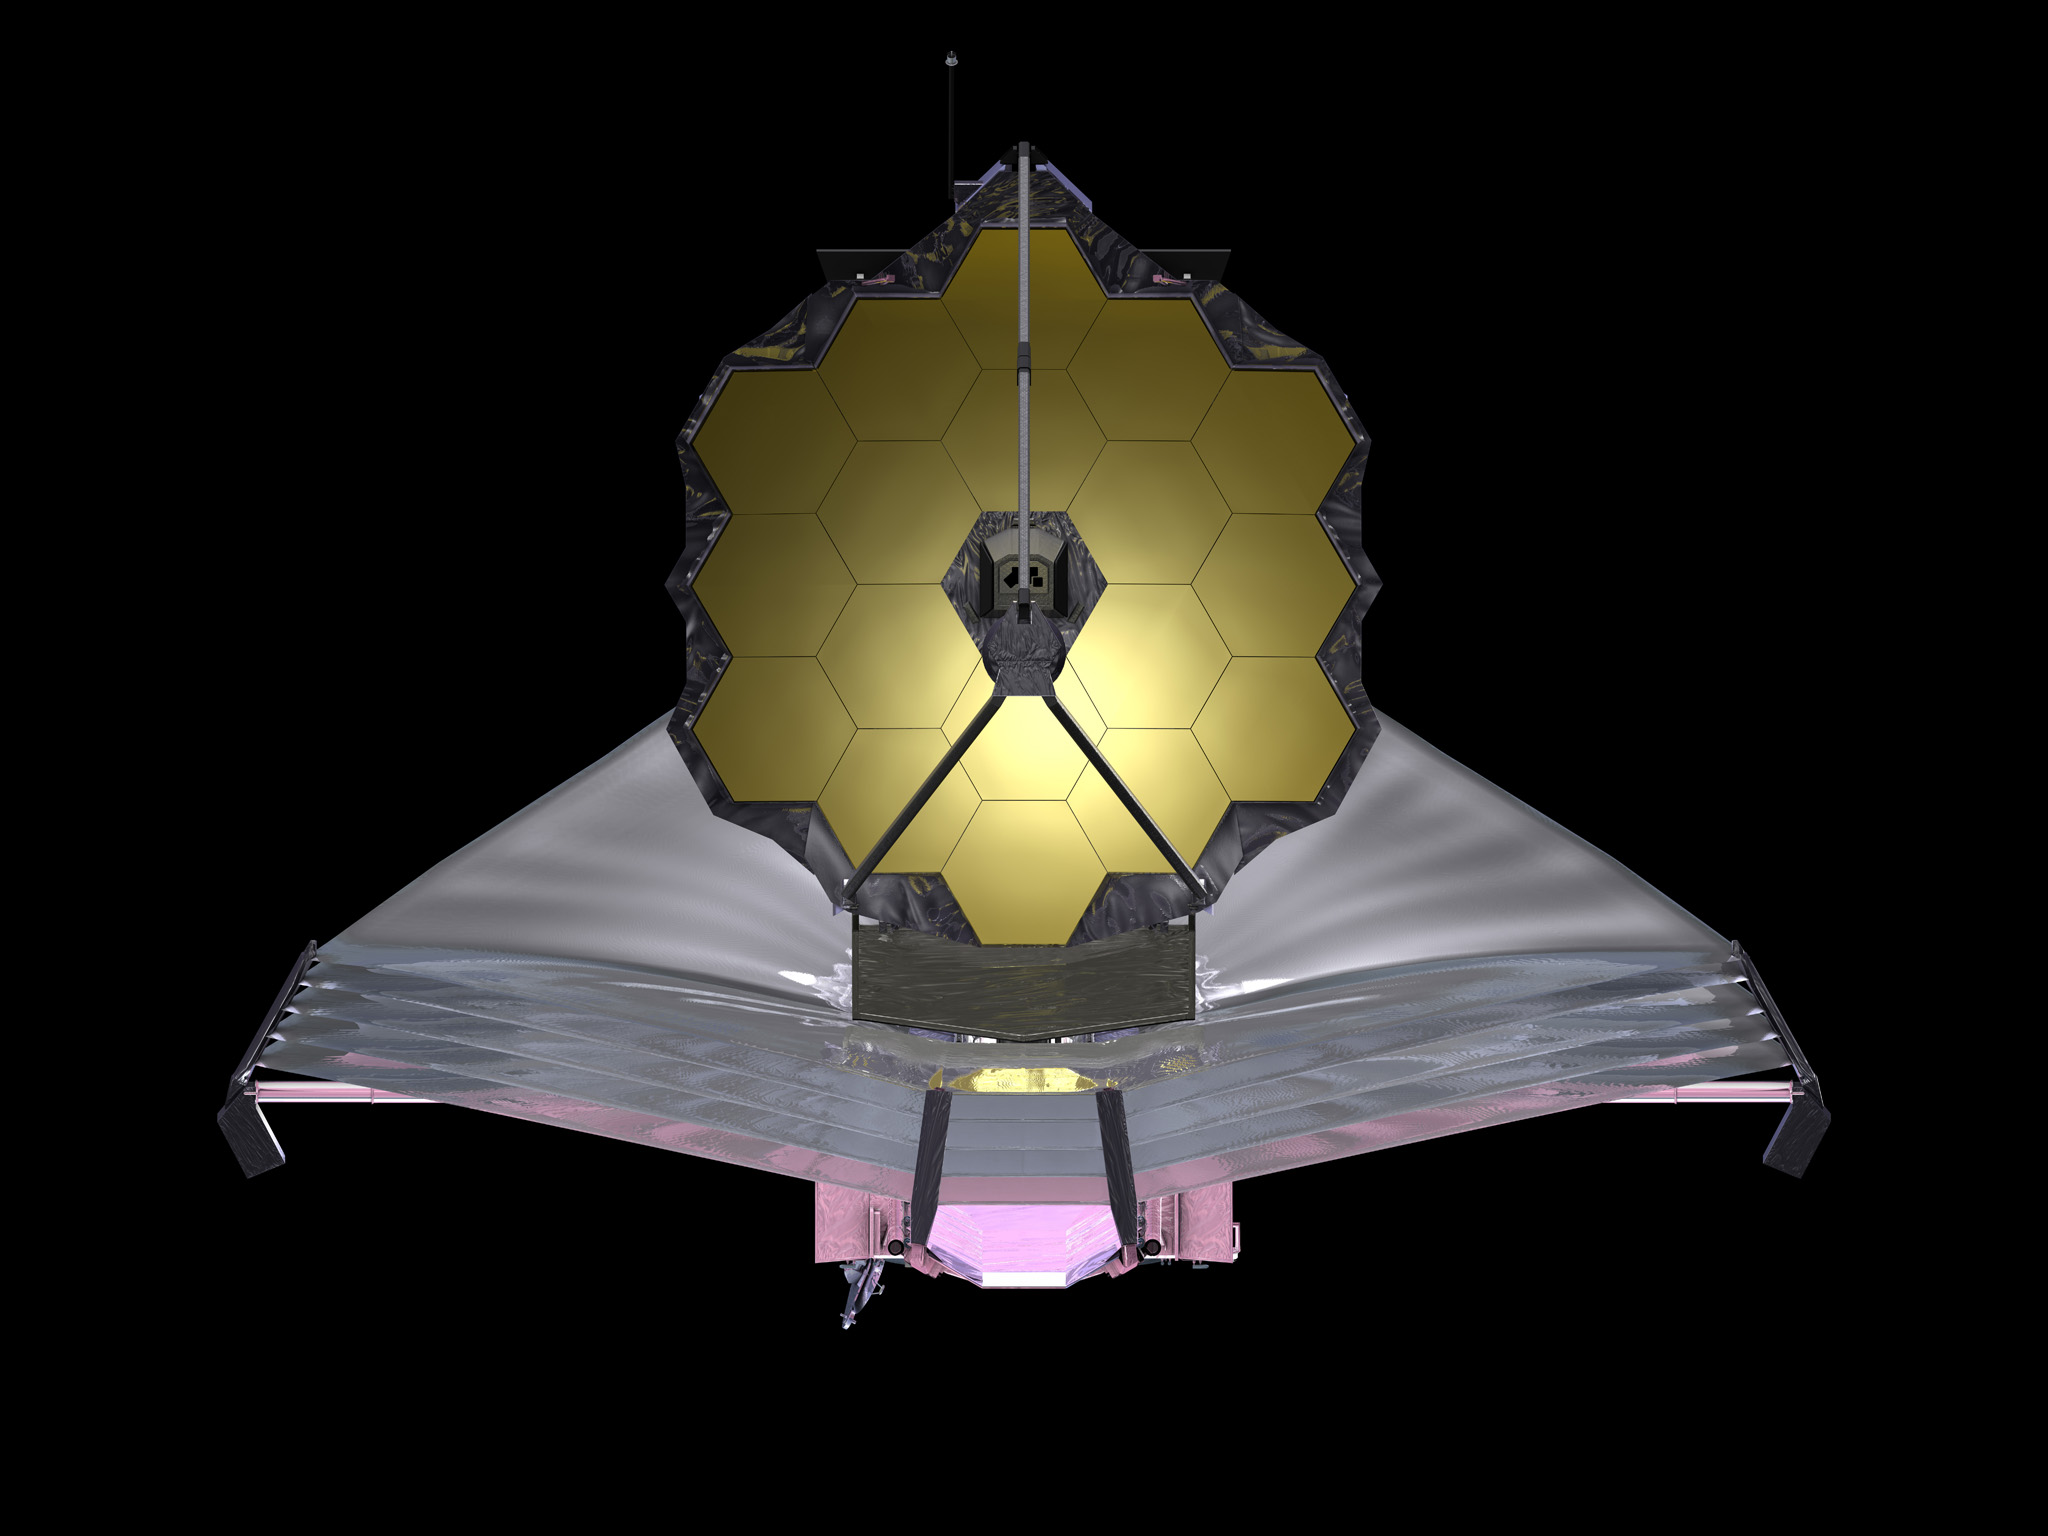 September 2009 artist conception of NASA's James Webb Space Telescope. Credit: NASA